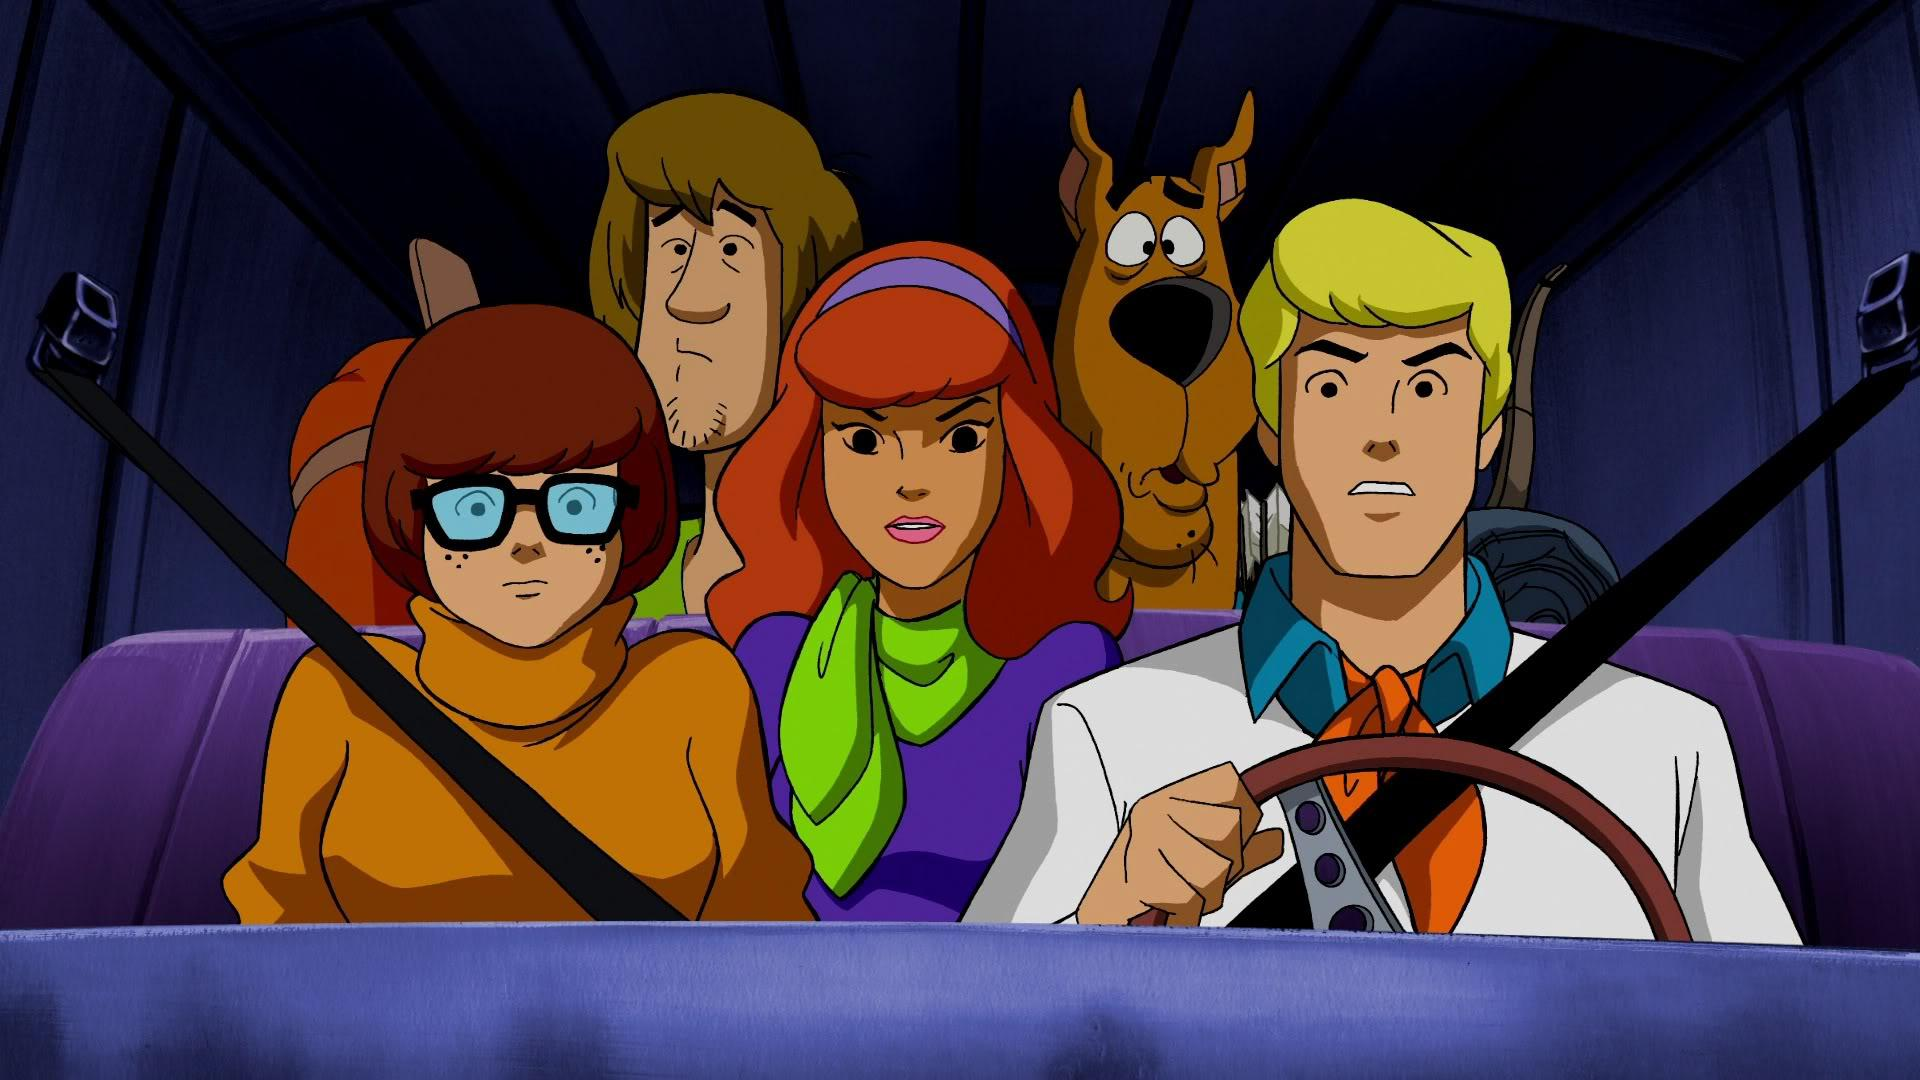 Scooby Doo Backgrounds Wallpapers 26489